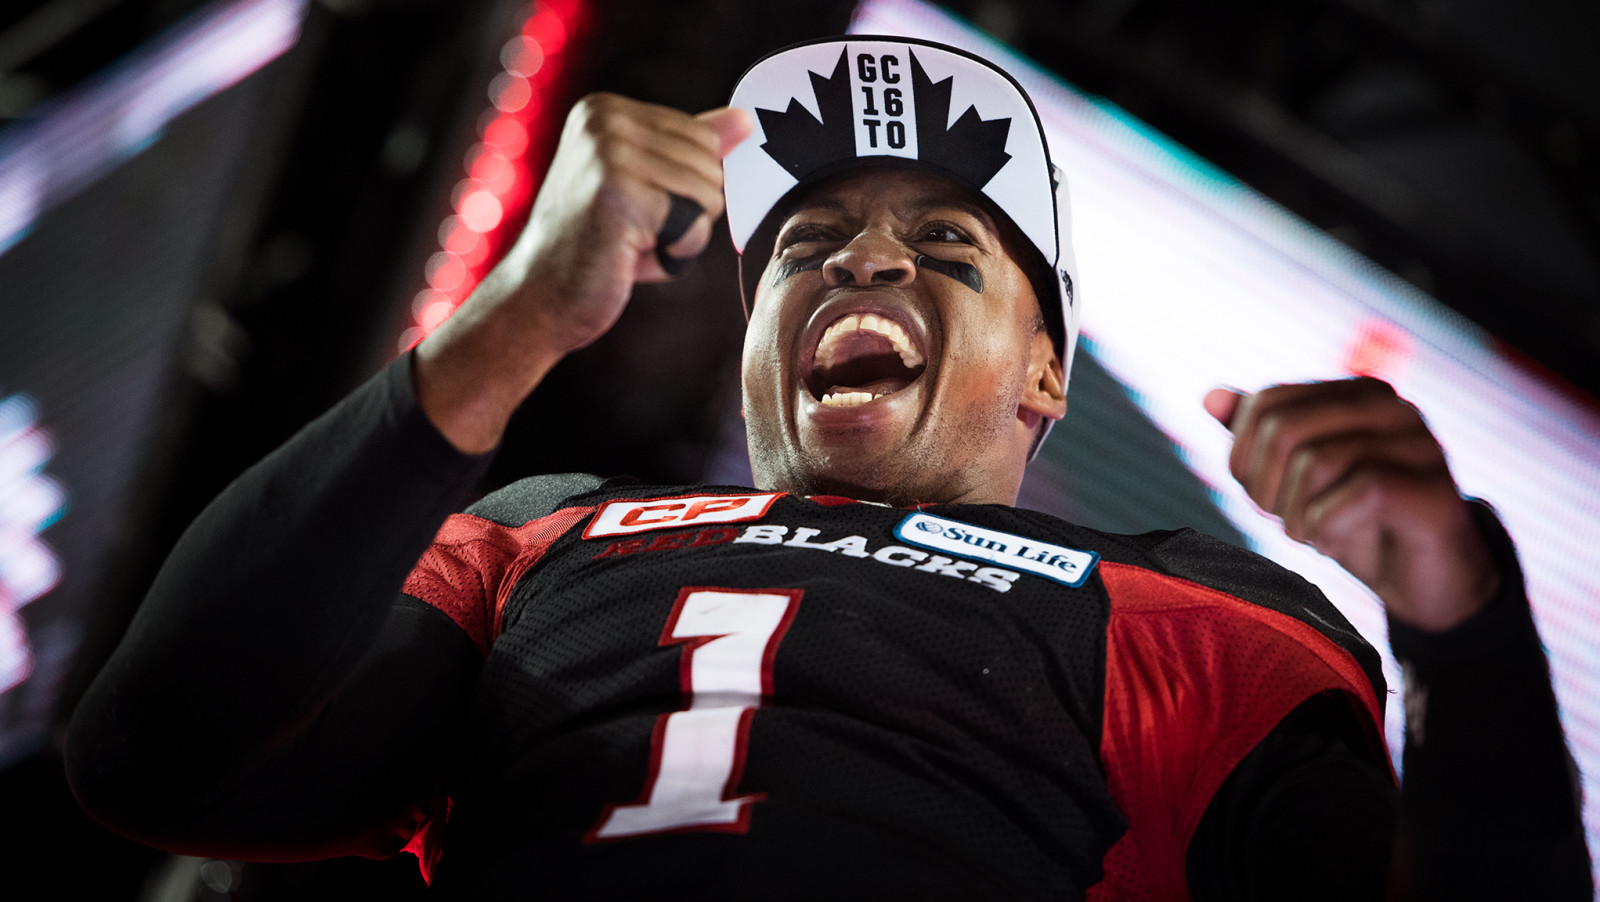 29c57067c42 The Quarterback  Henry Burris makes CFL debut in The Players  Tribune